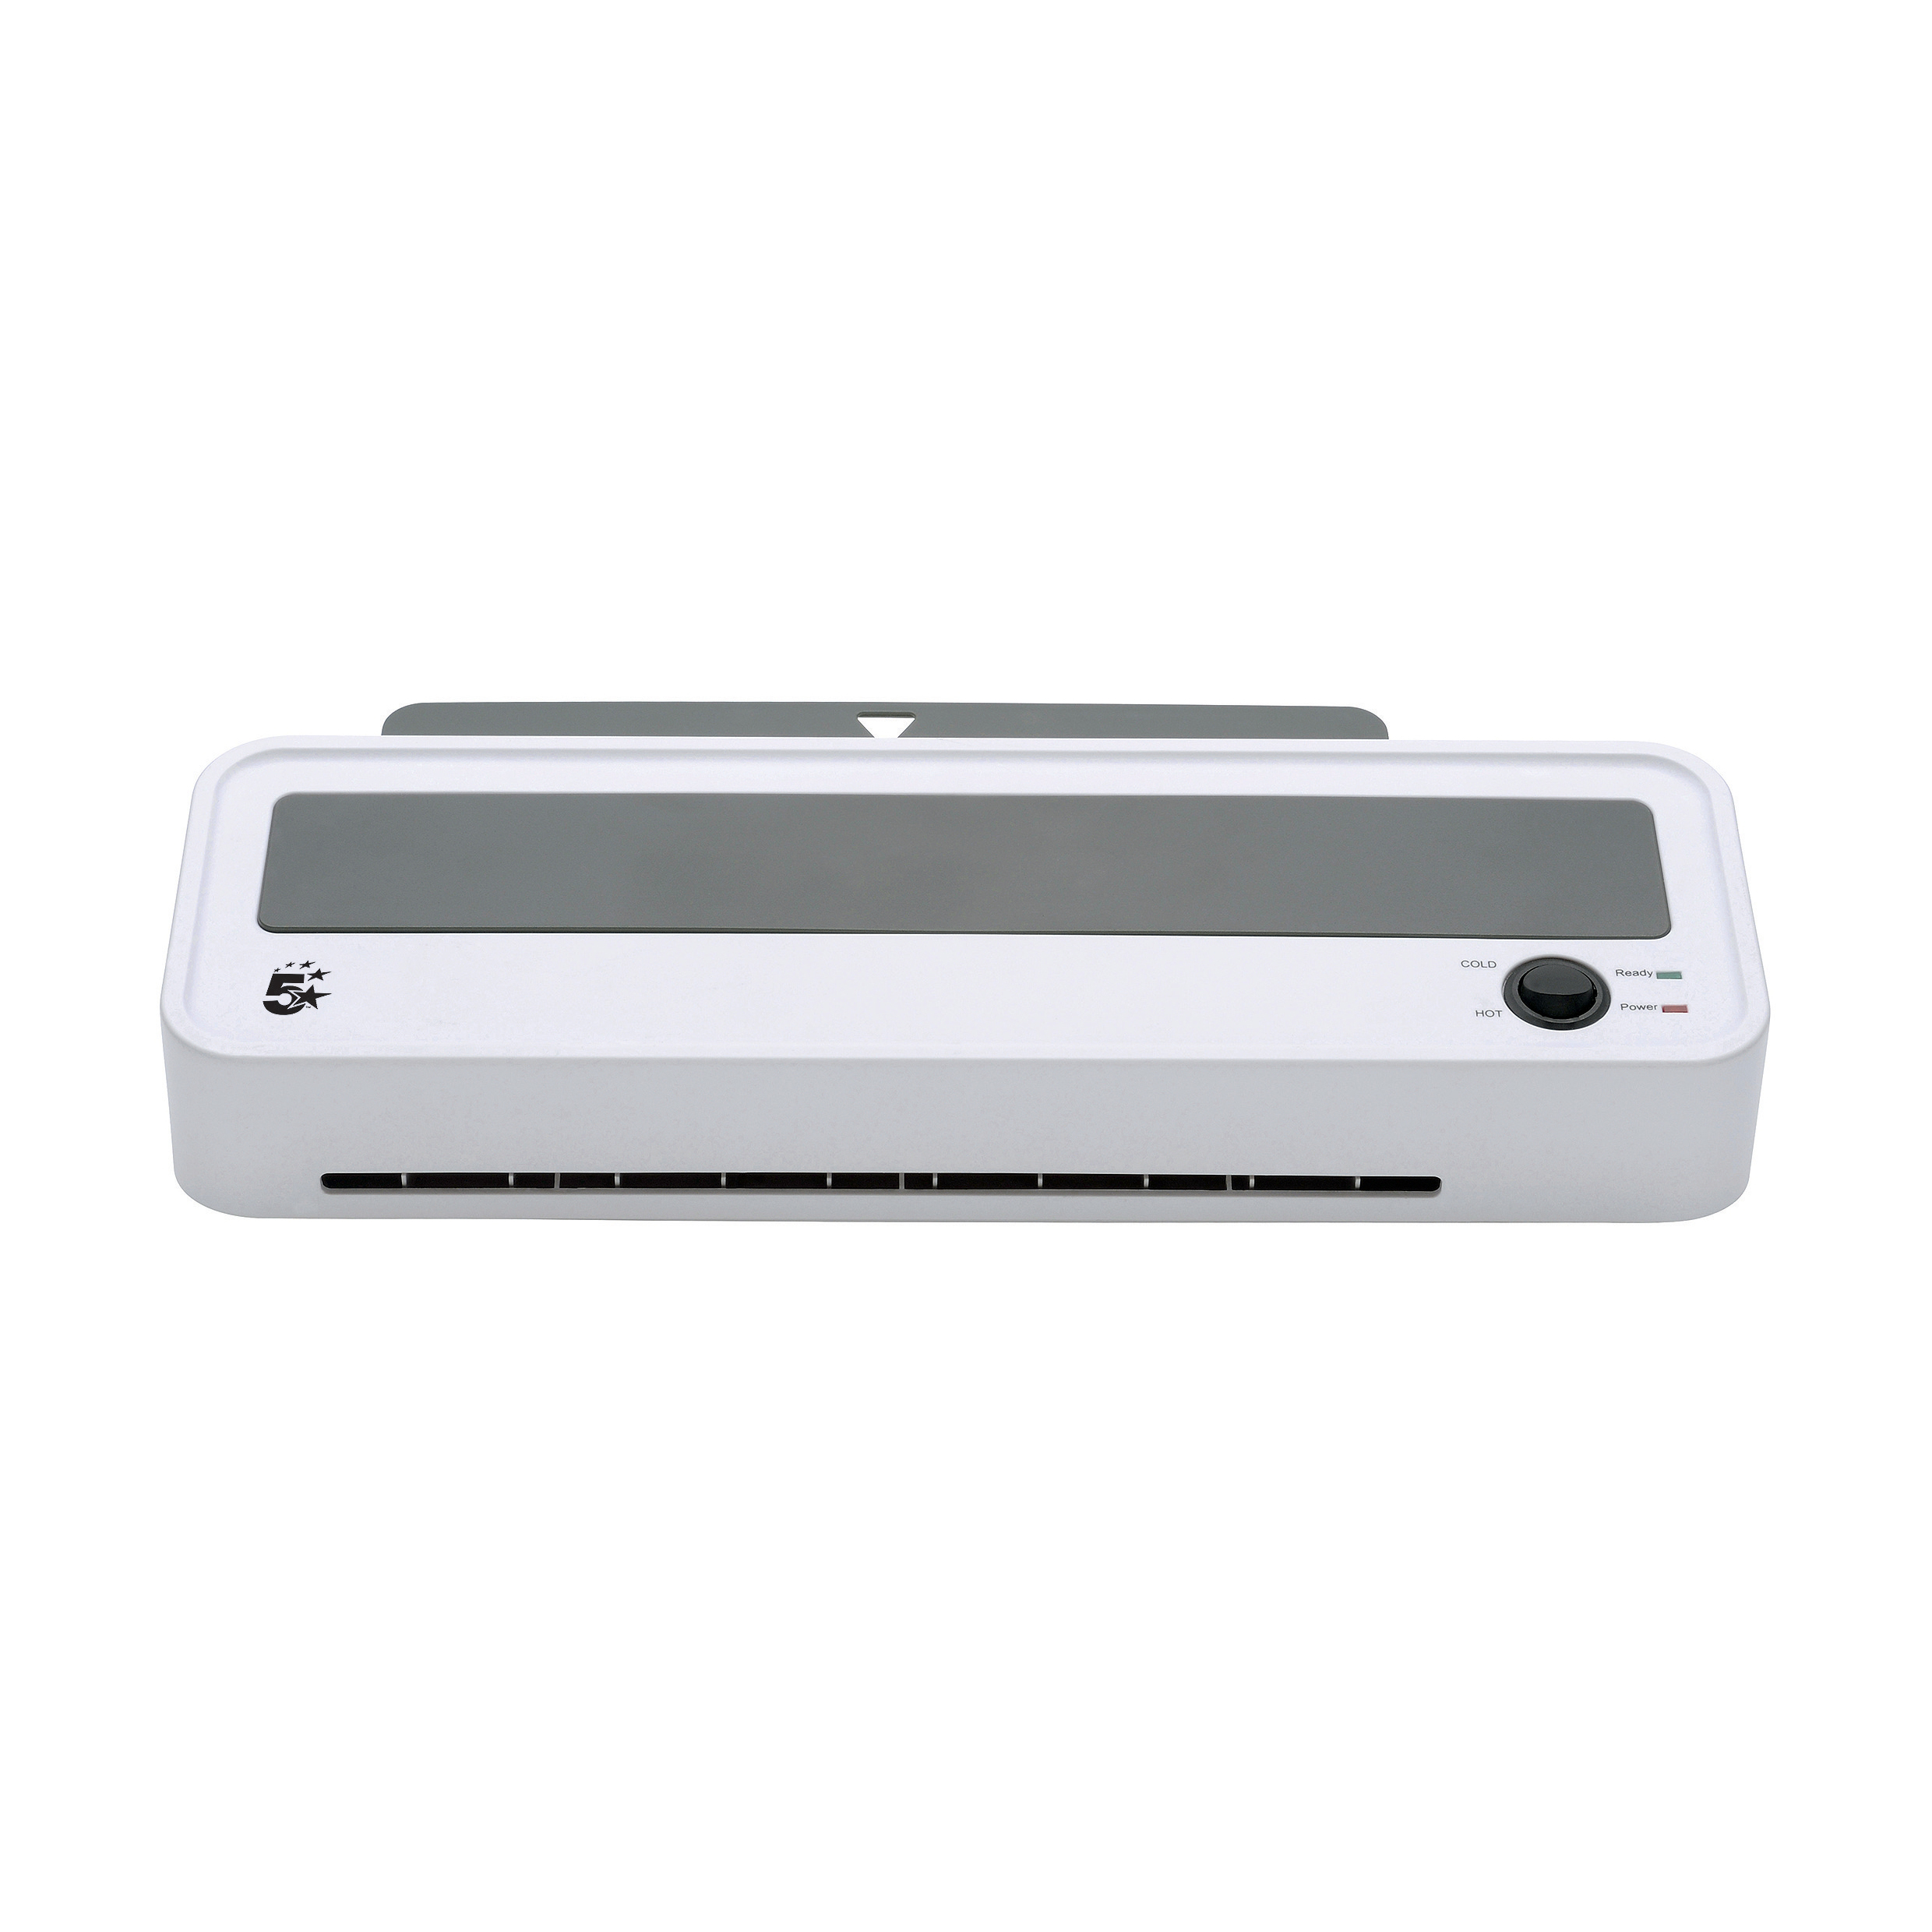 Laminating Machines 5 Star Office Hot and Cold A4 Laminator Up to 2x125micron Pouches